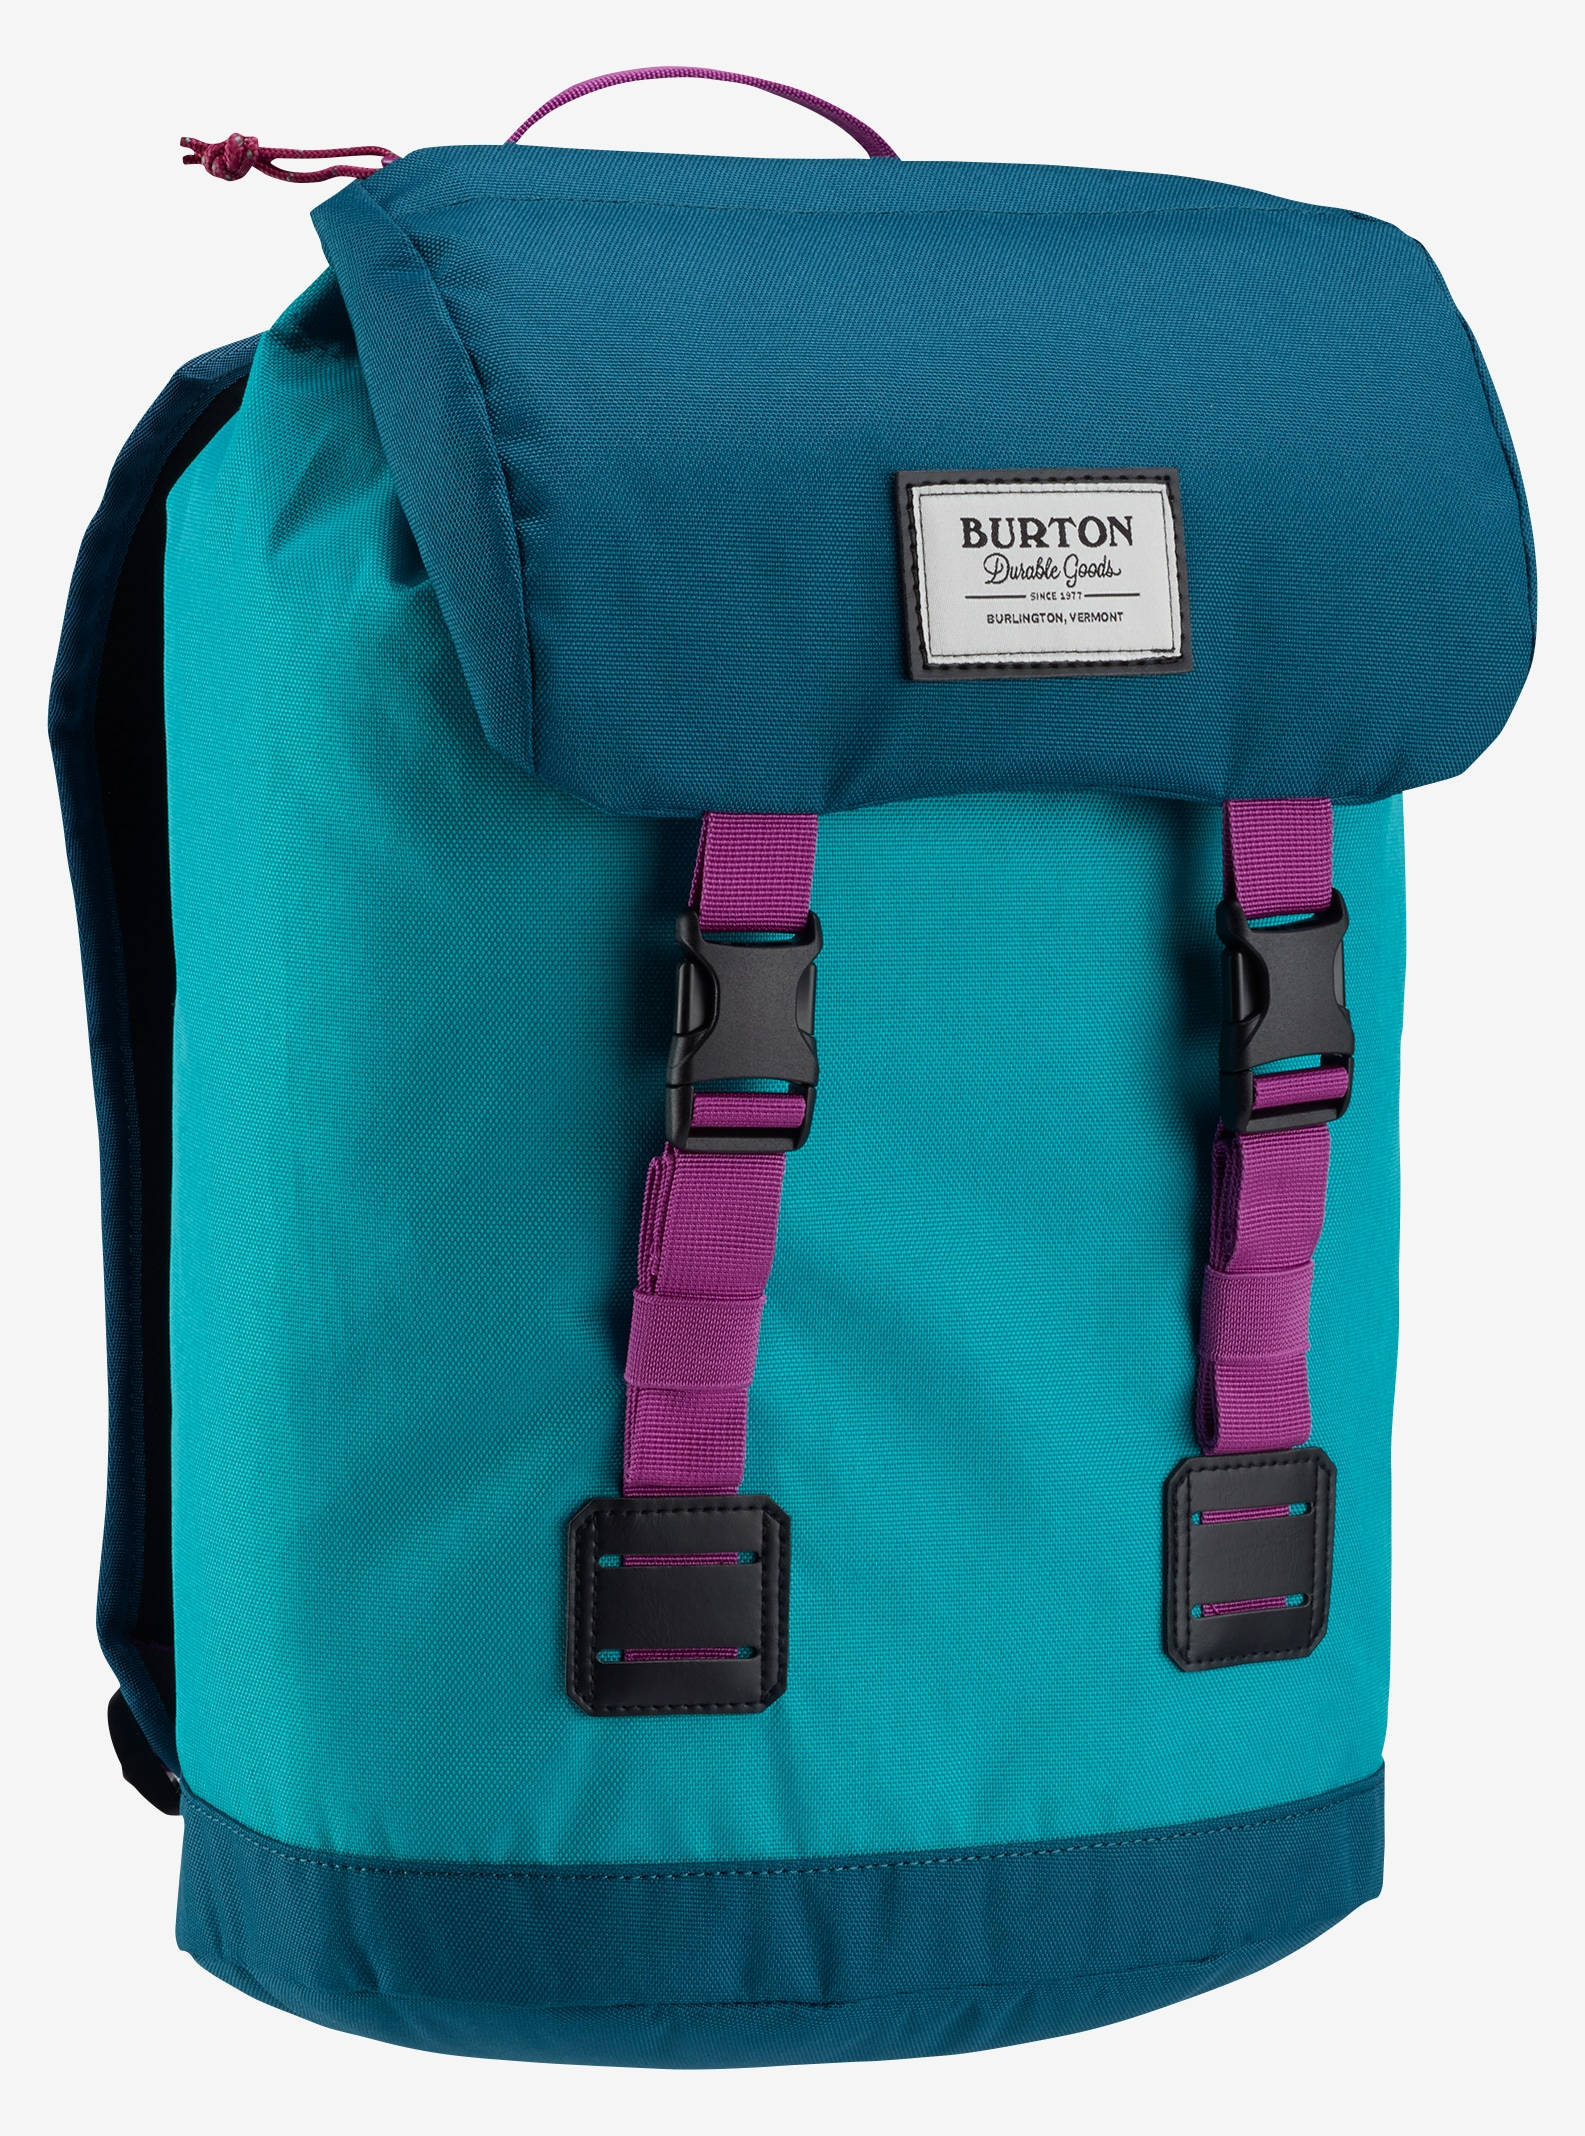 Burton Kids' Tinder Backpack shown in Everglade